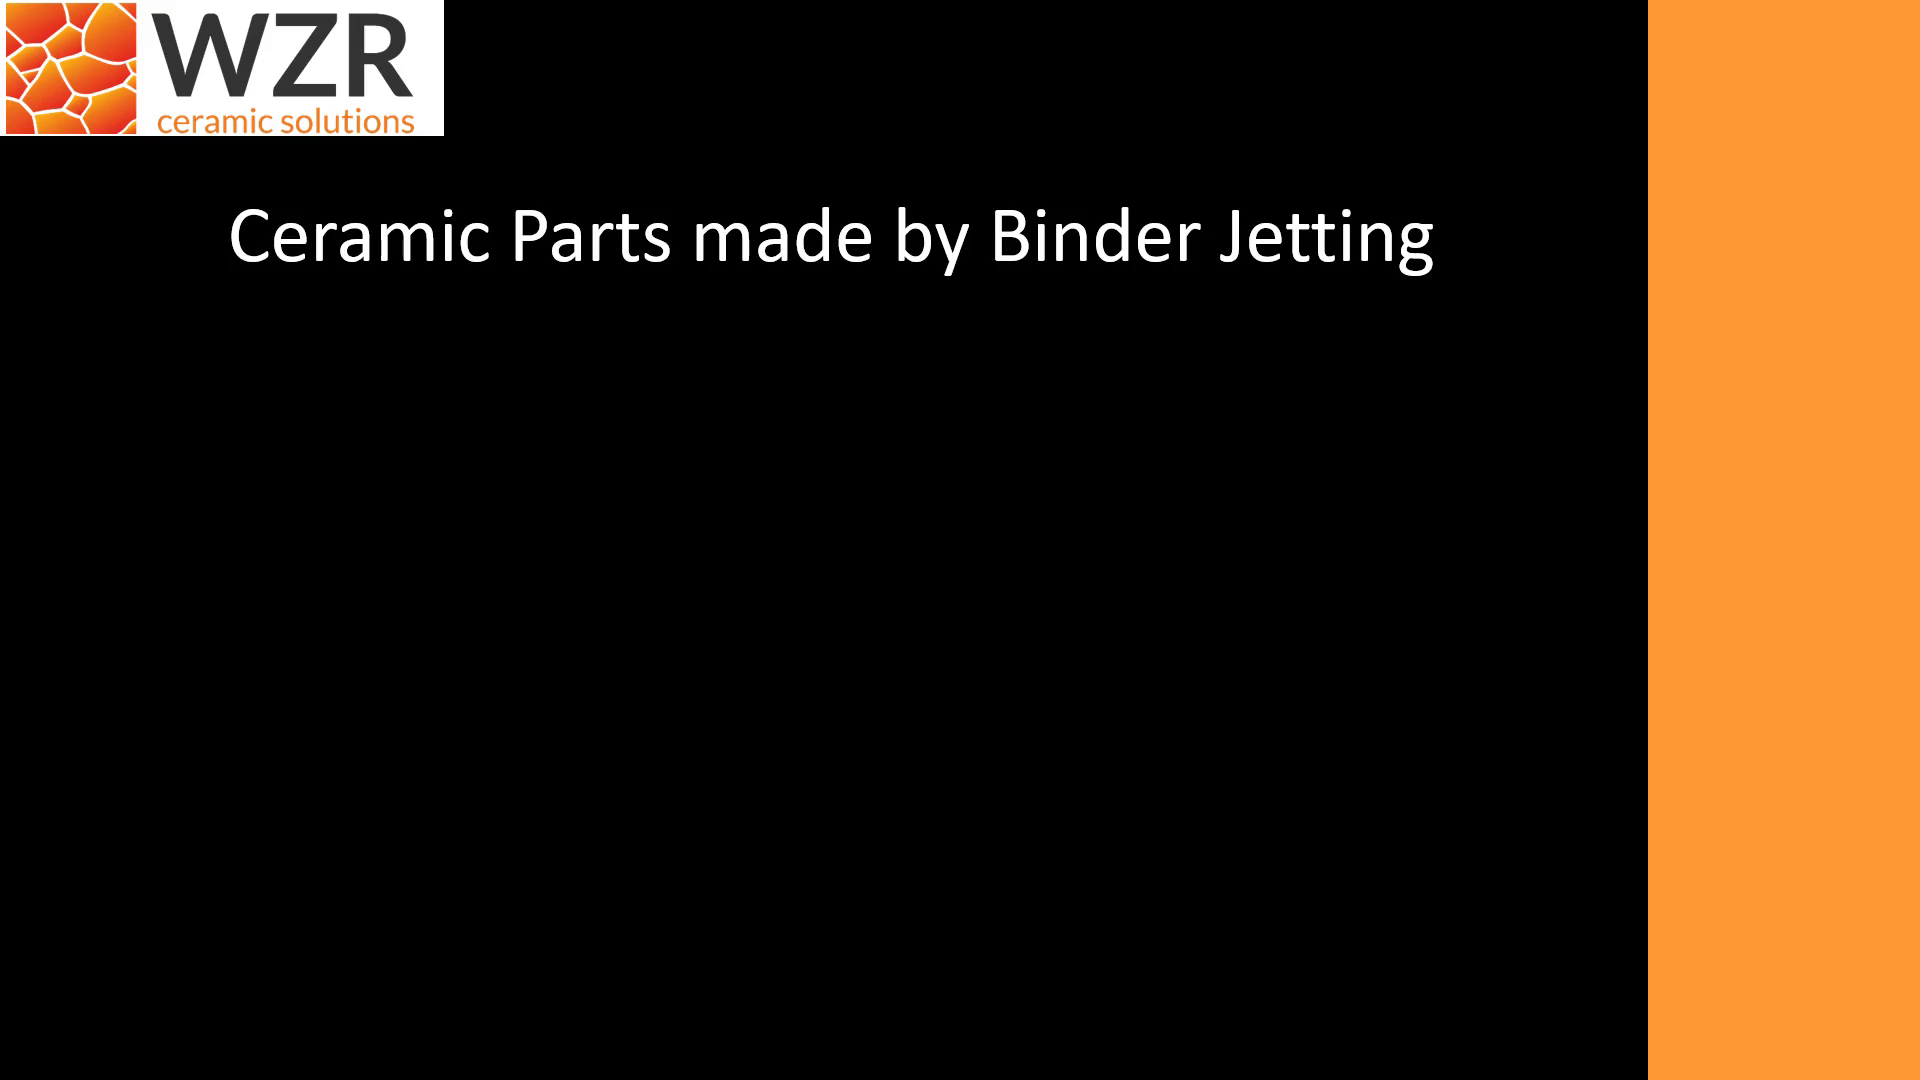 Ceramic Parts made by Binder Jetting